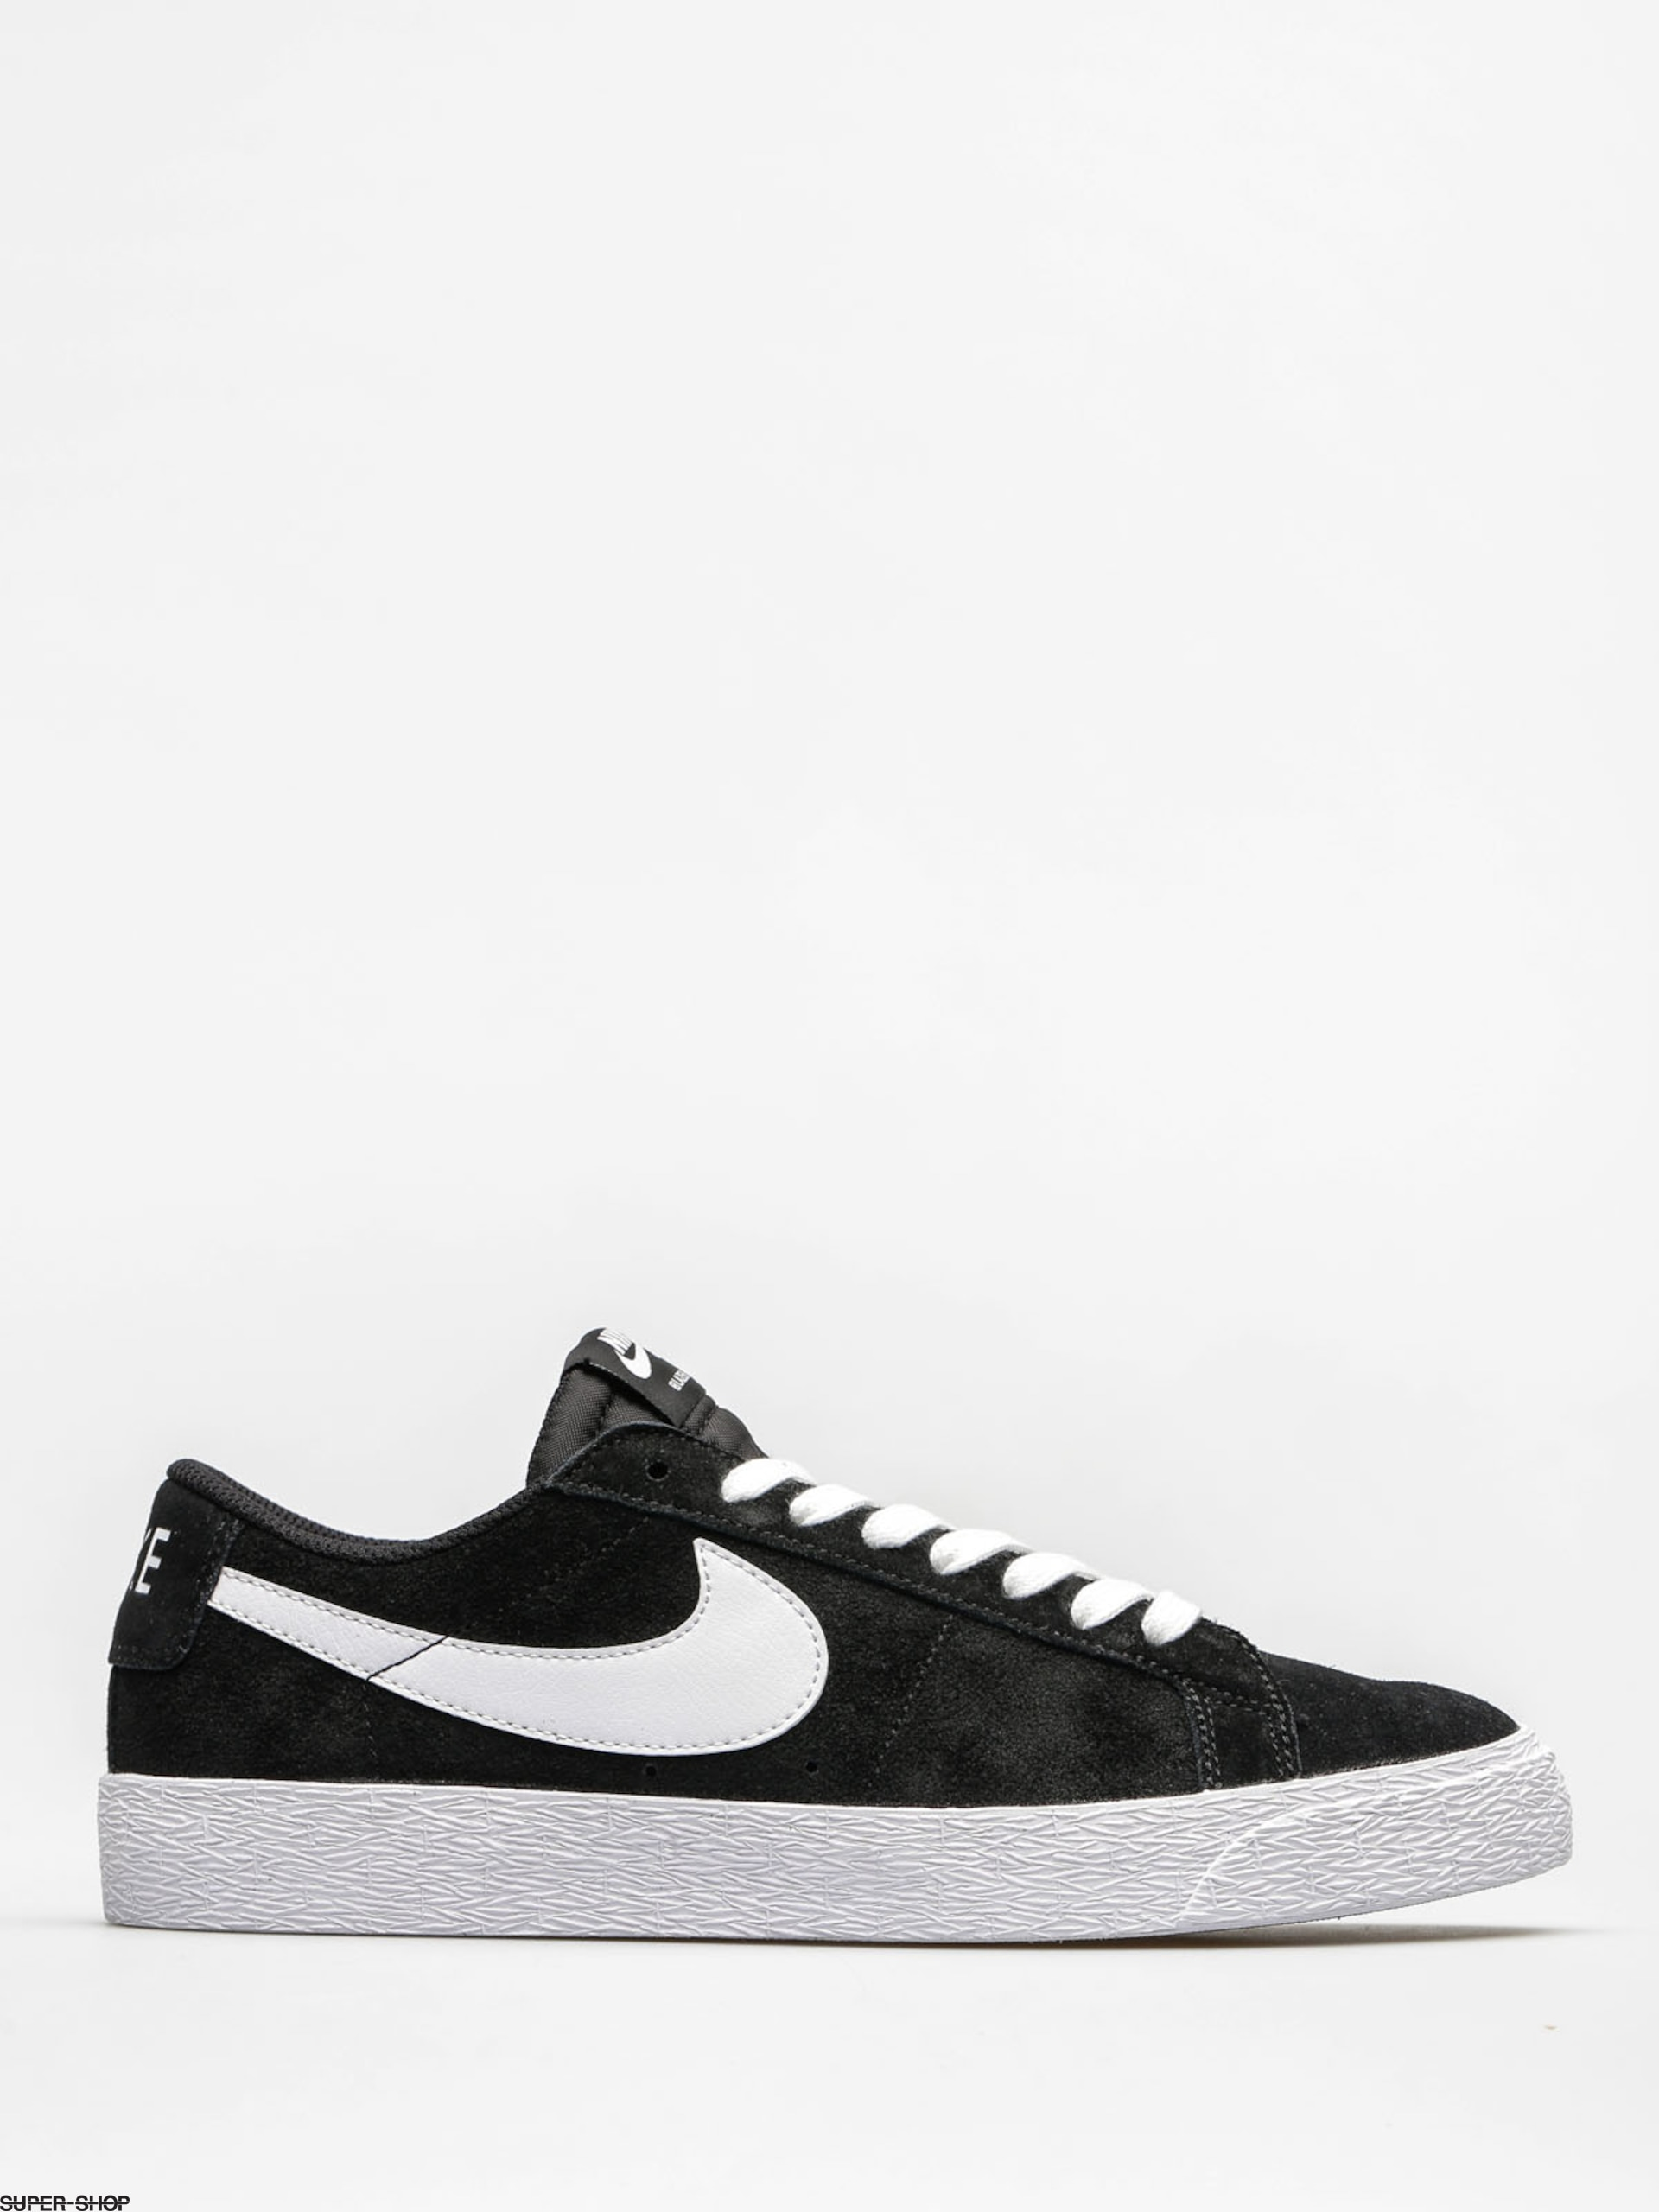 autobiografía bádminton Alentar  Nike SB Shoes Zoom Blazer Low (black/white gum light brown)